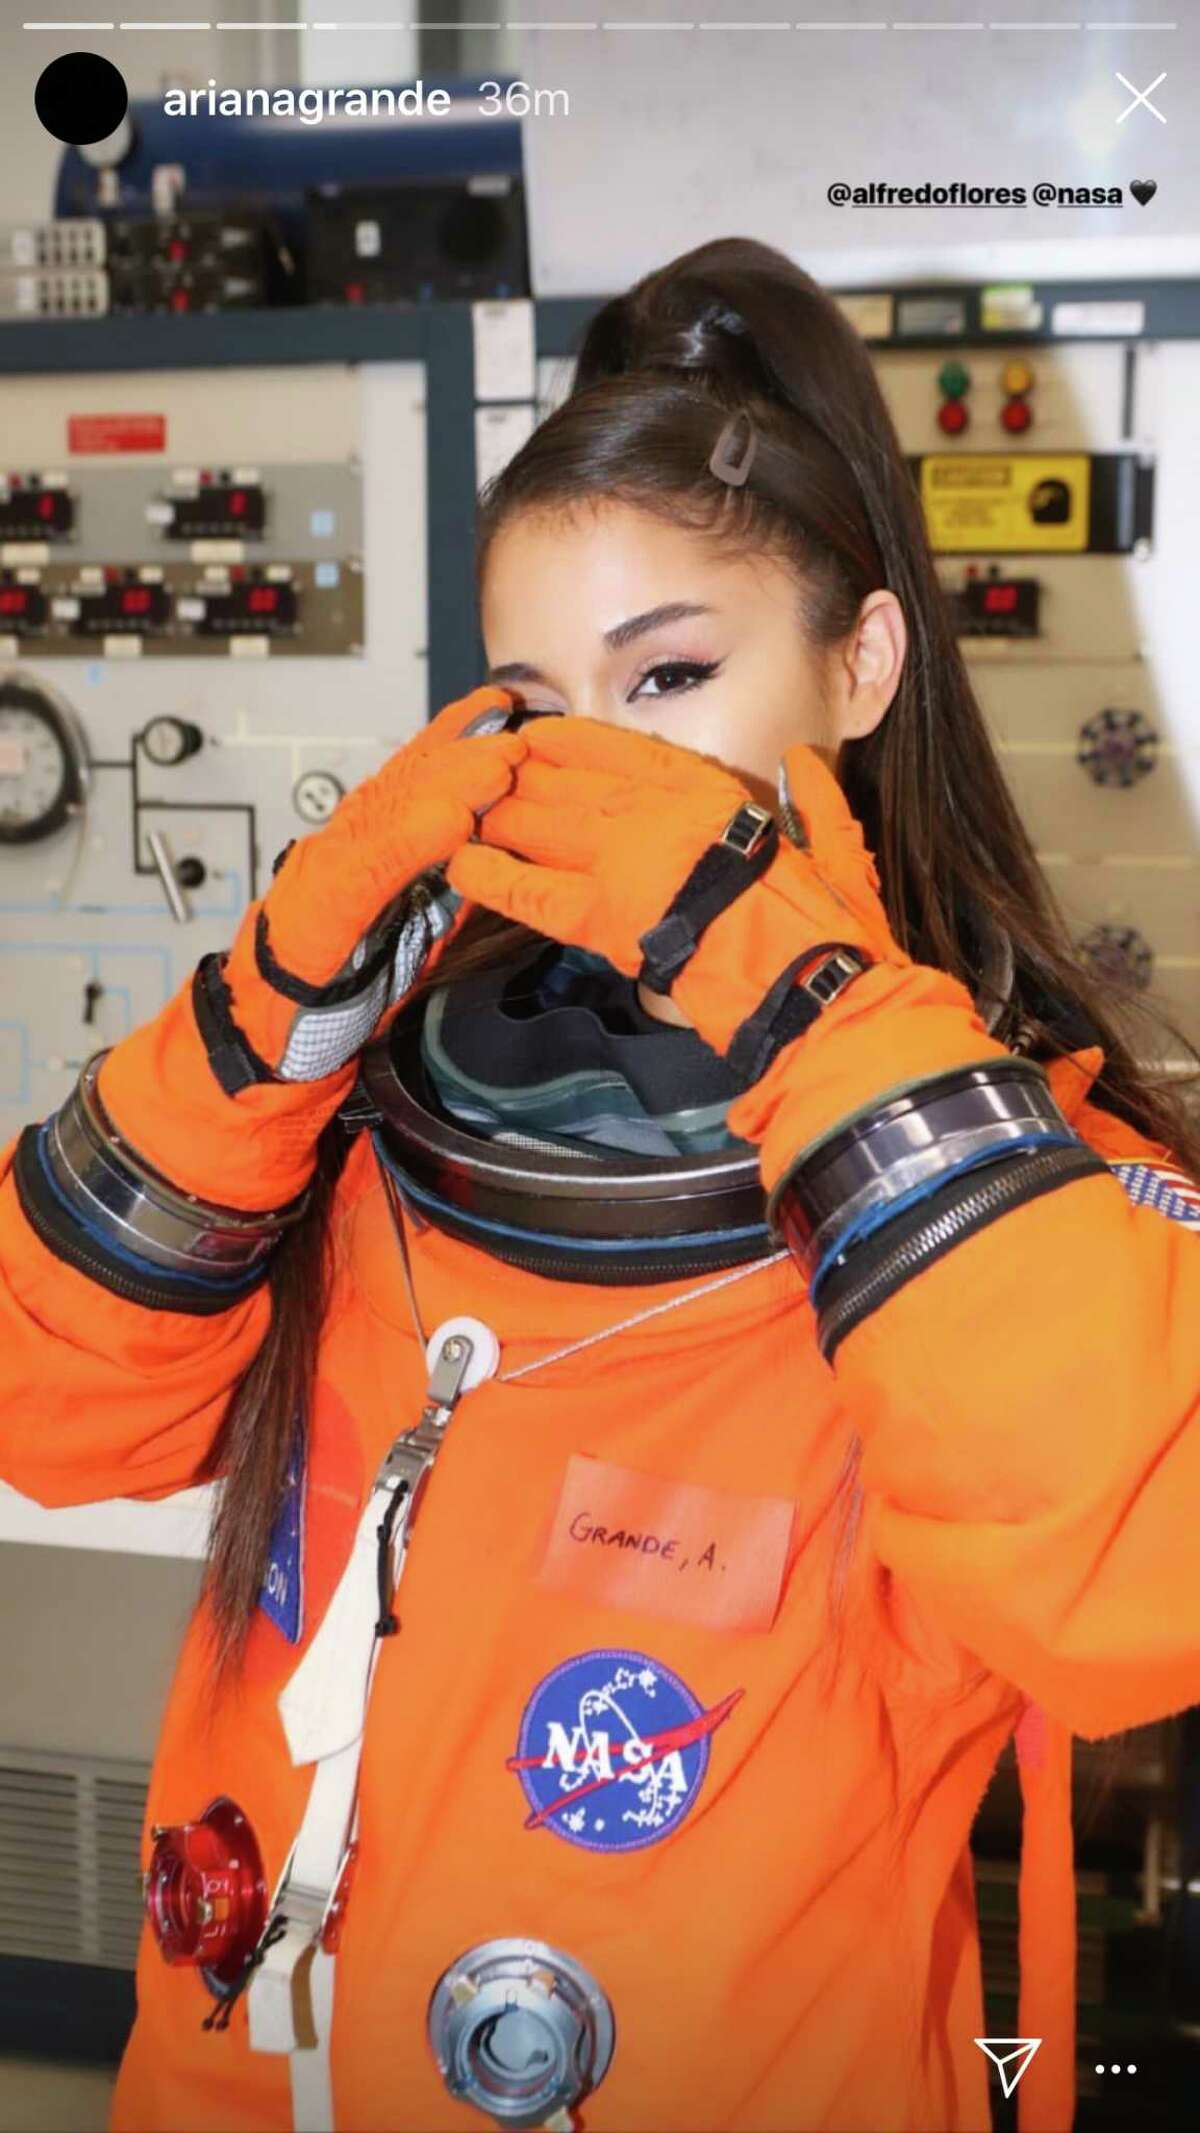 Ariana Grande spent time at NASA ahead of Sunday's Houston show.